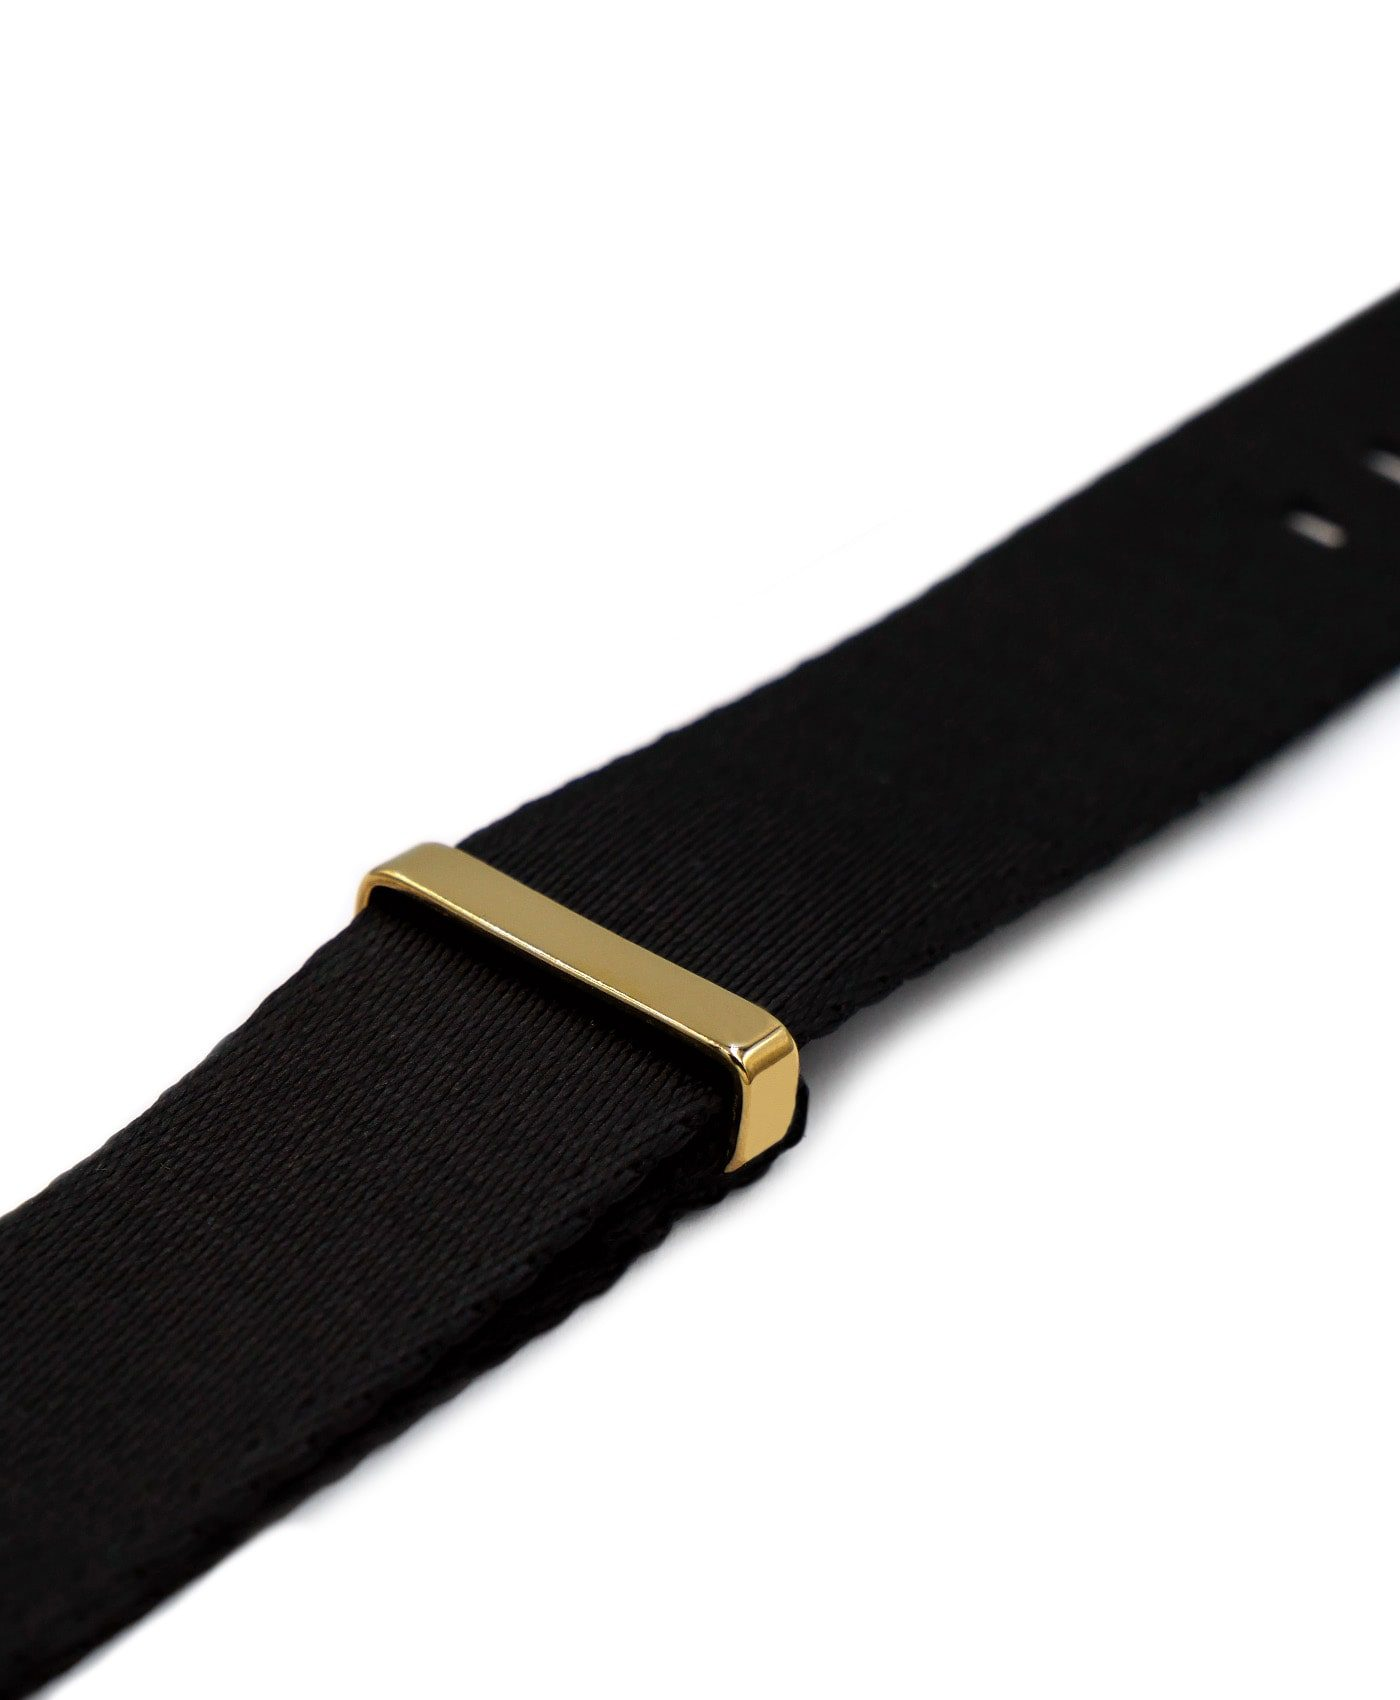 Watchbandit Premium yellow gold NATO strap side keeper